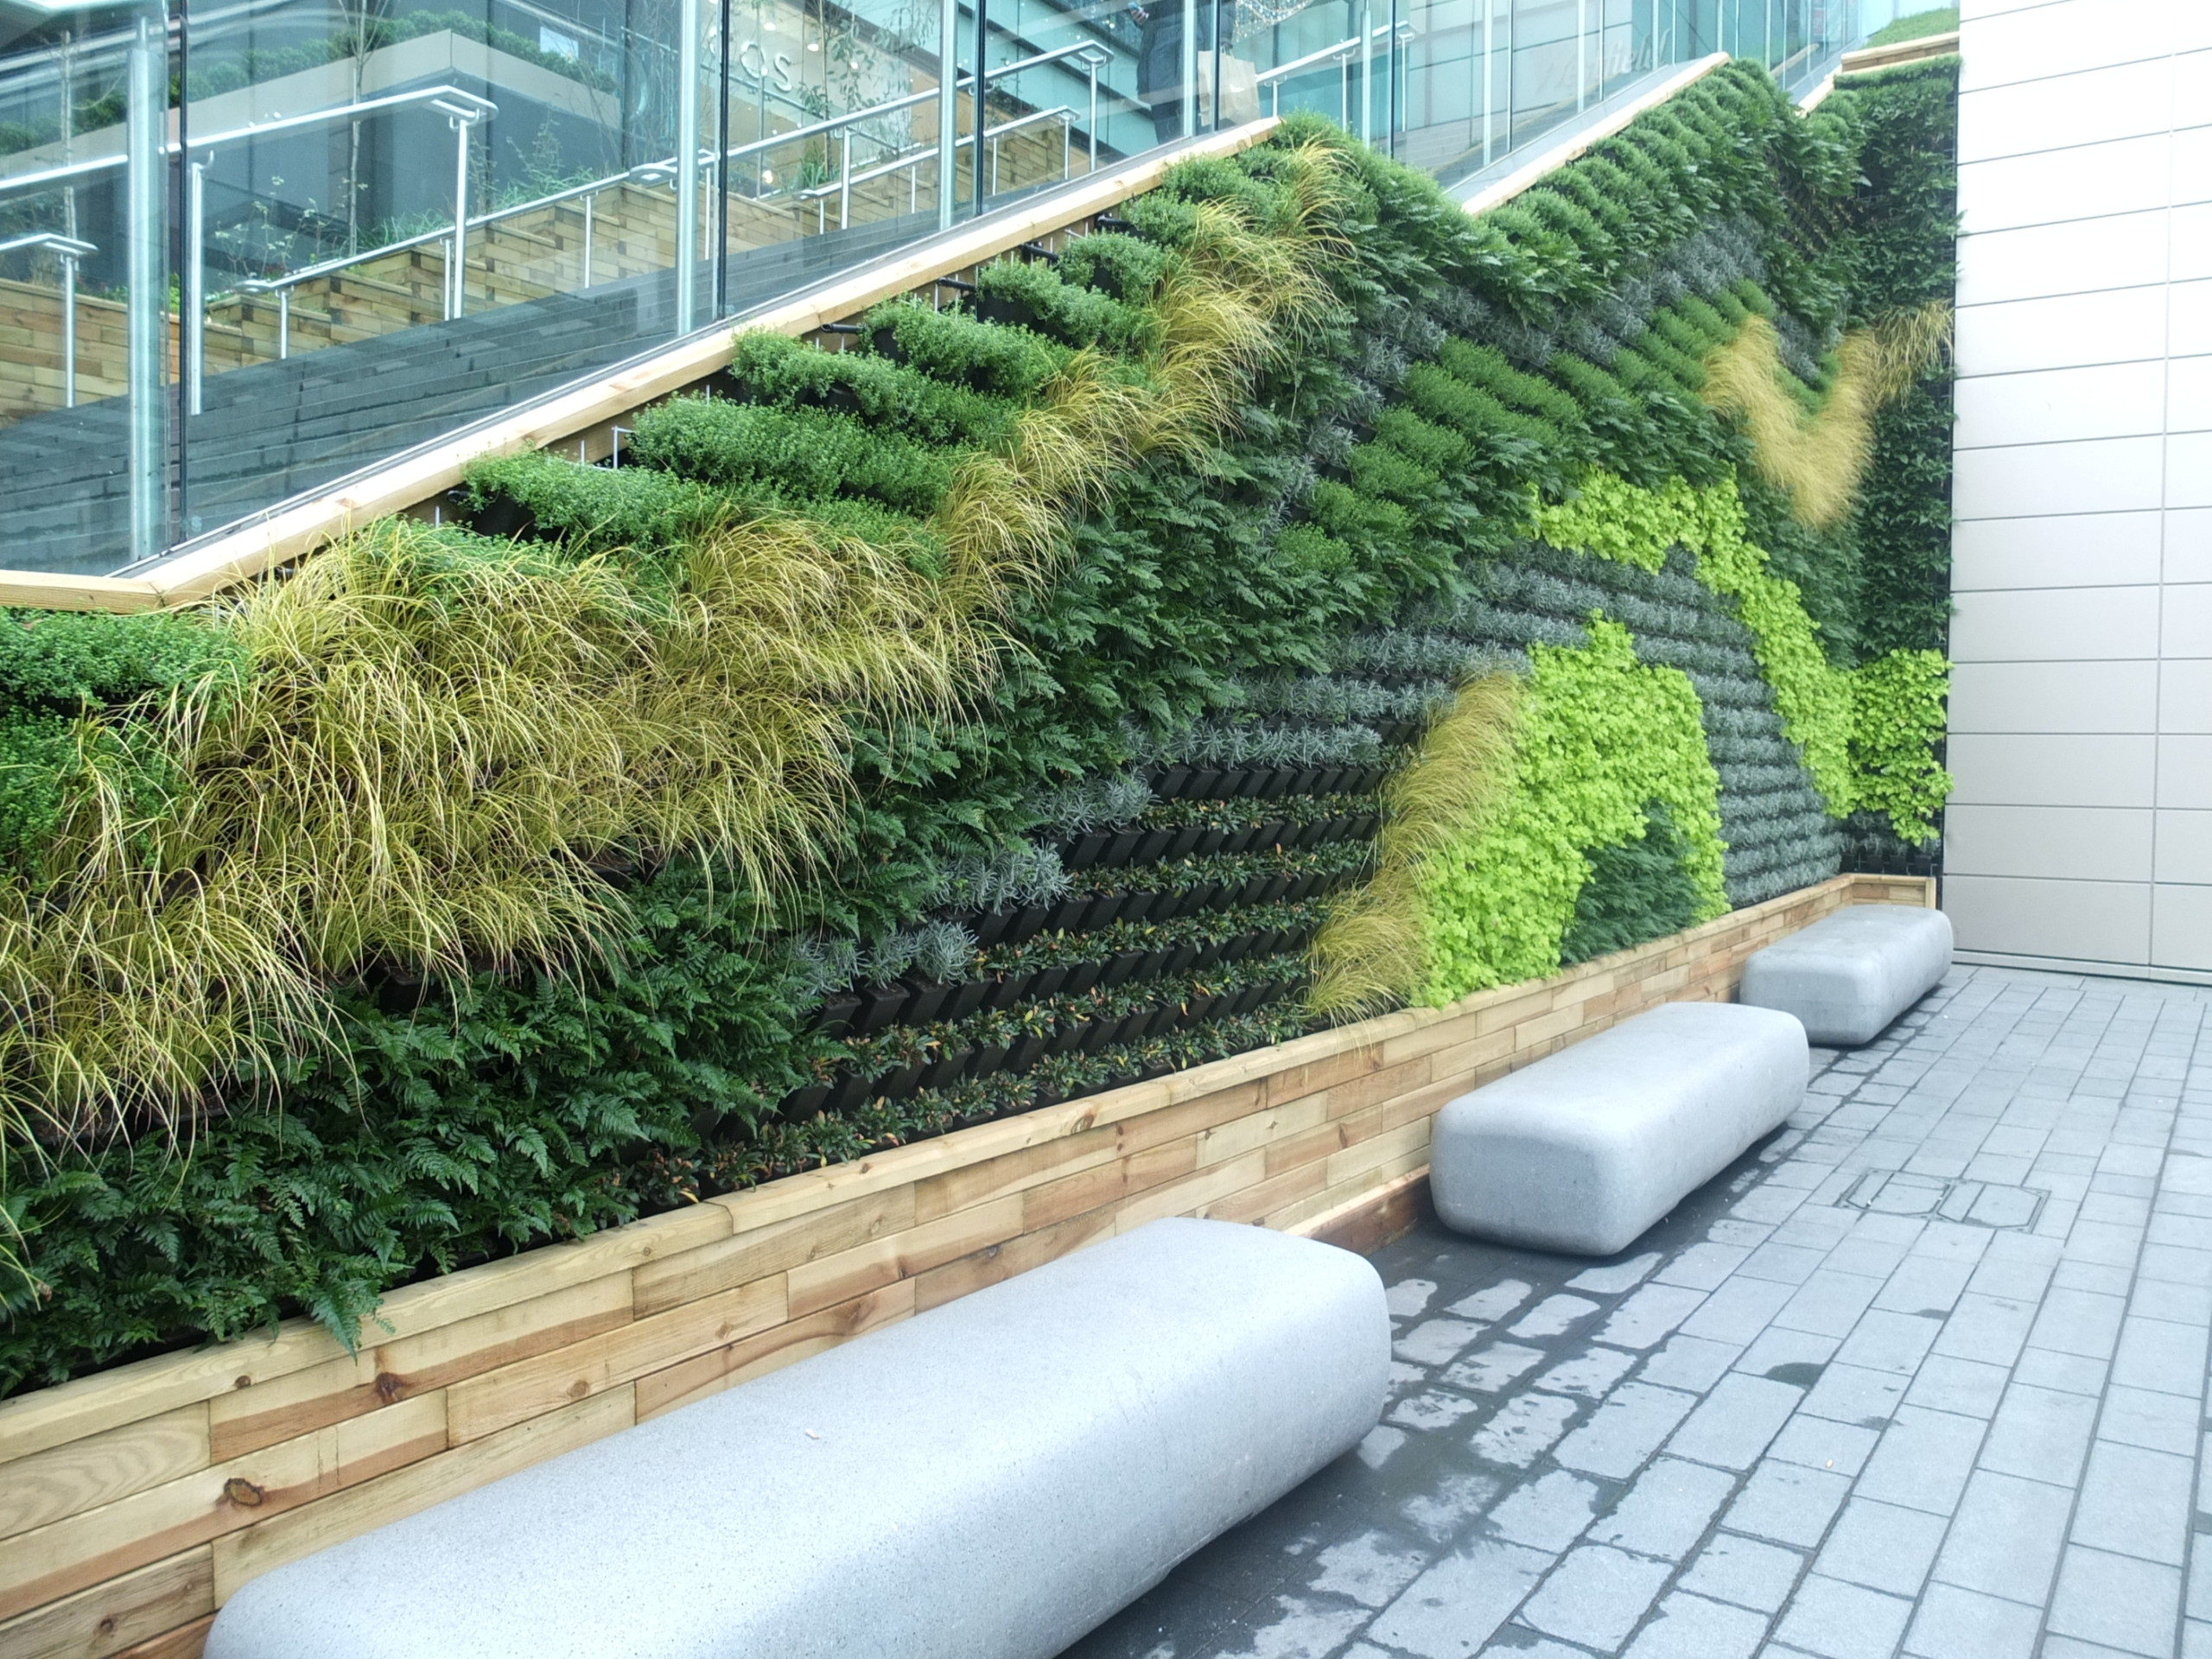 Westfield_WoodBlocX_livingwall